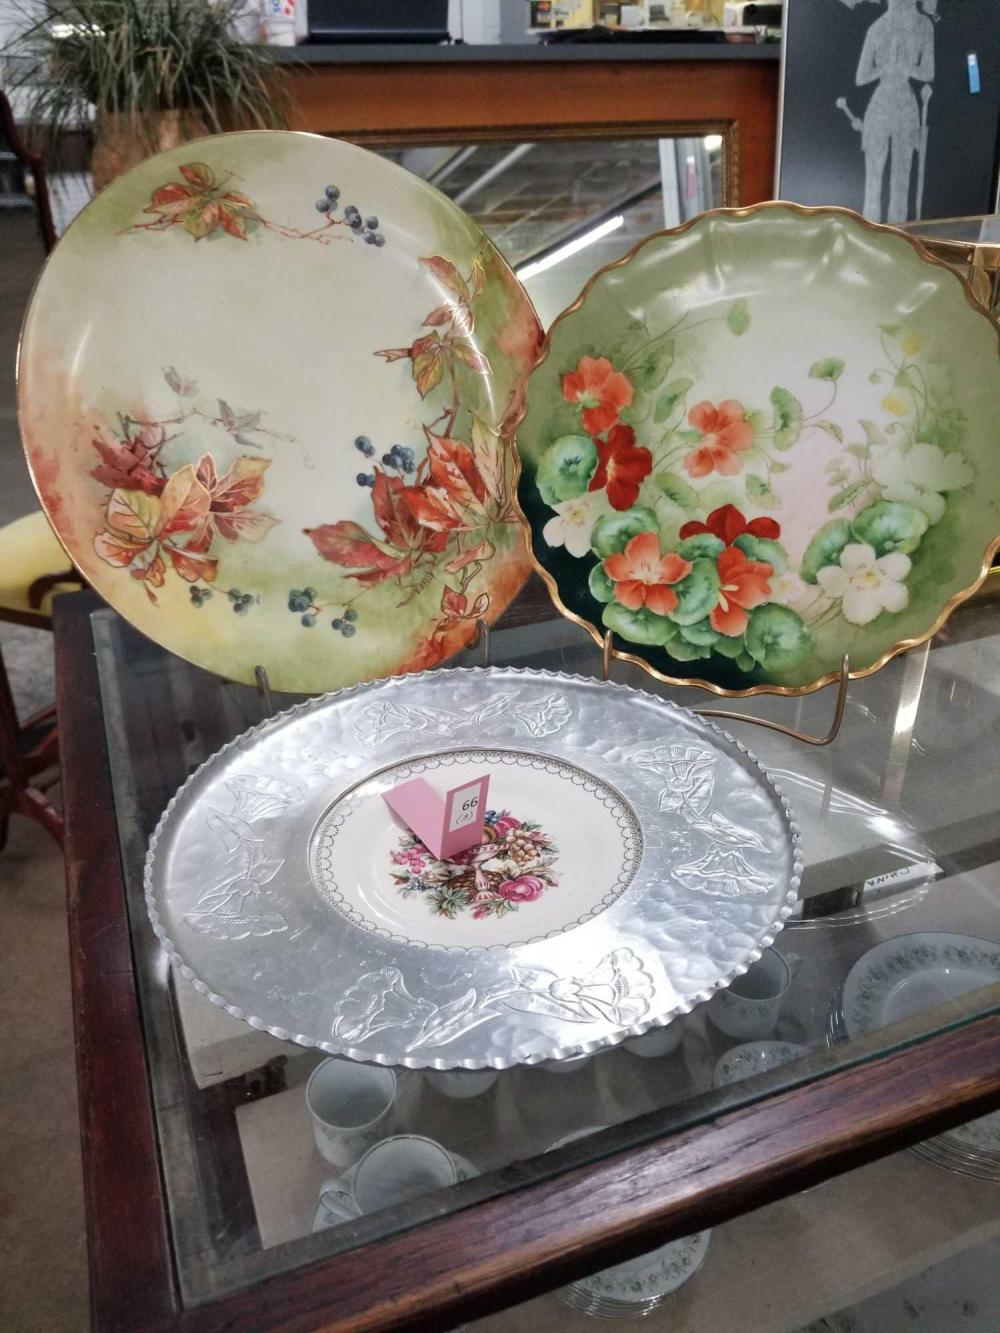 VINTAGE HAND PAINTED PLATES - 3 ITEMS